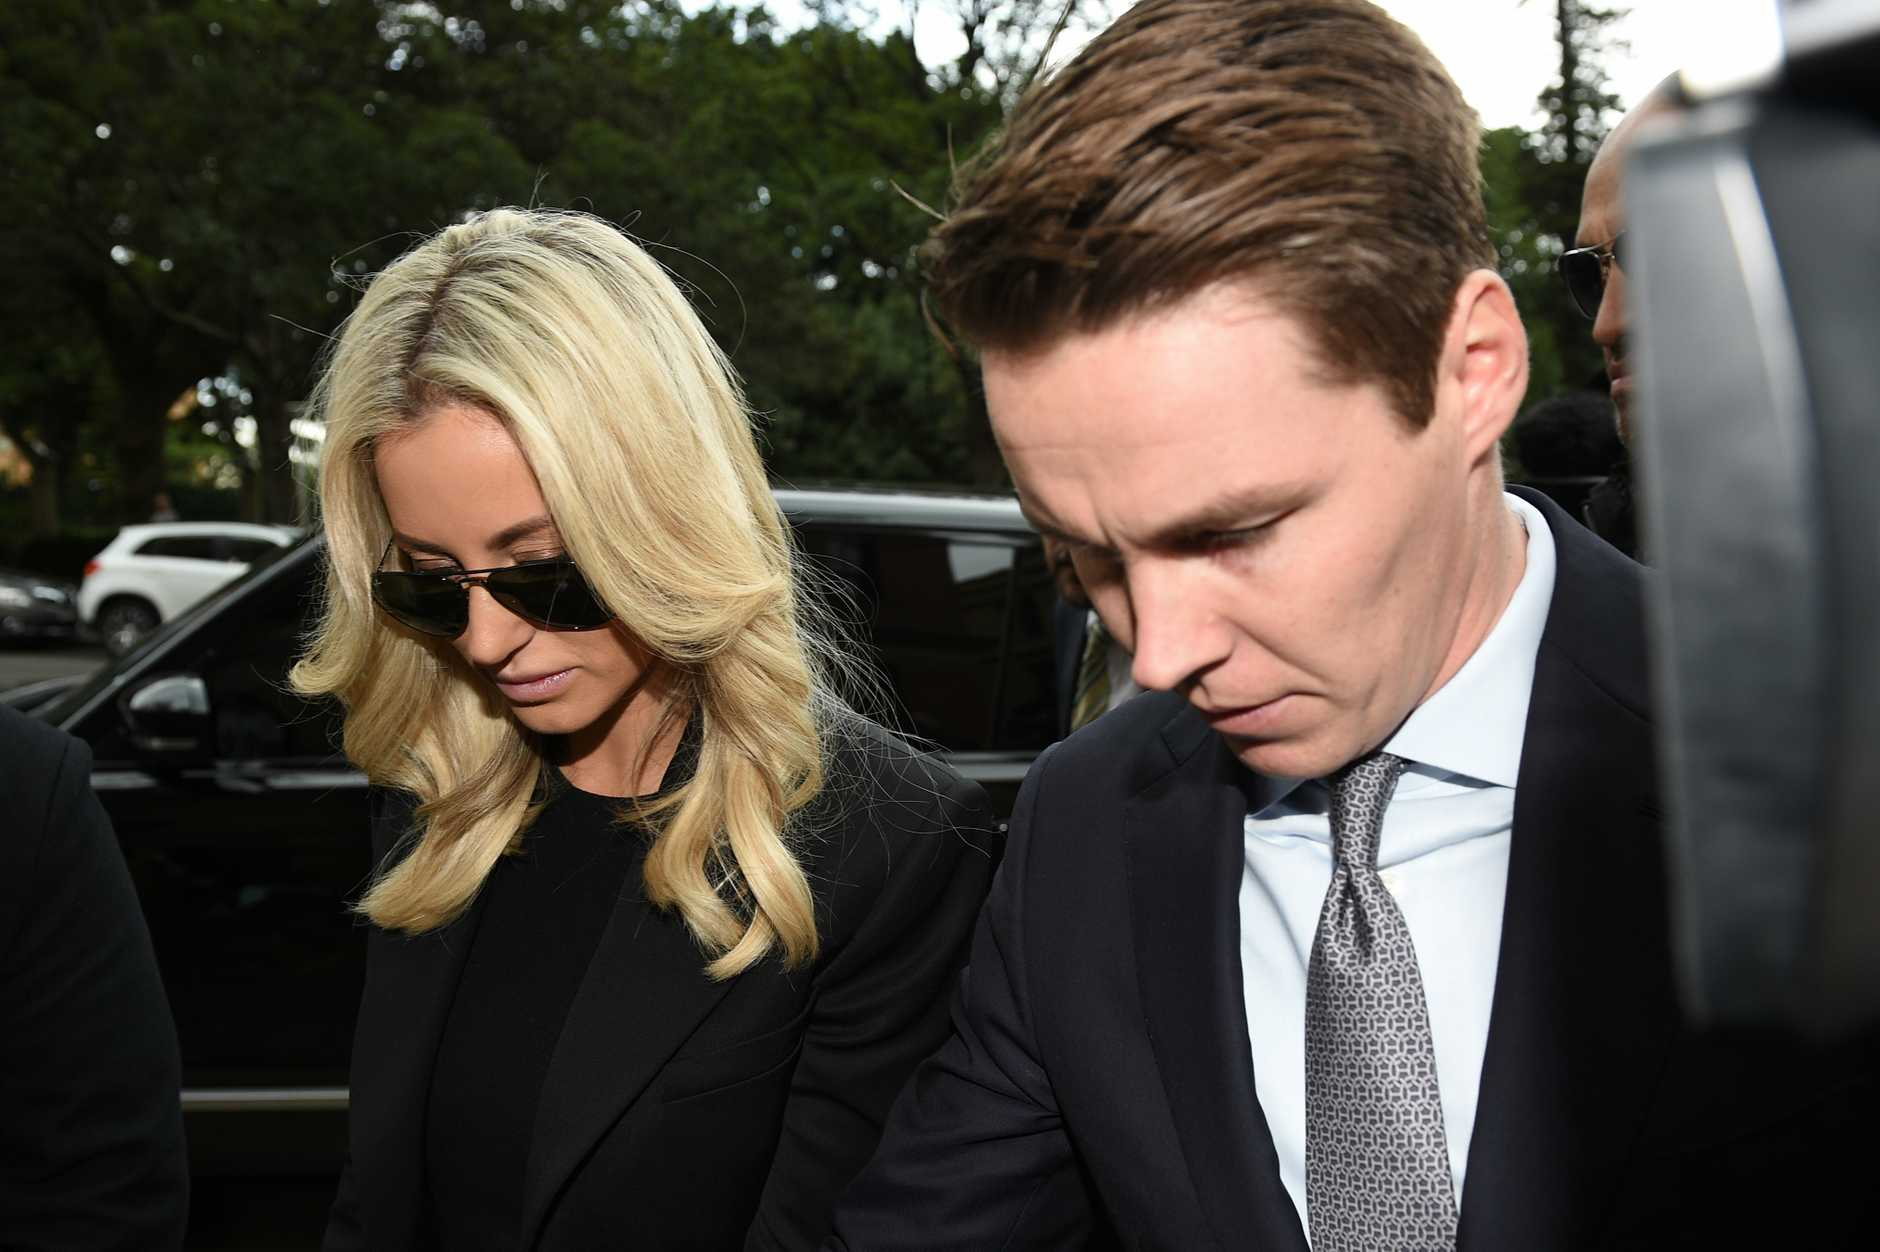 Stockbroker Oliver Curtis and wfe Roxy Jacenko arrive at the NSW Supreme Court in Sydney, Friday. Source AAP